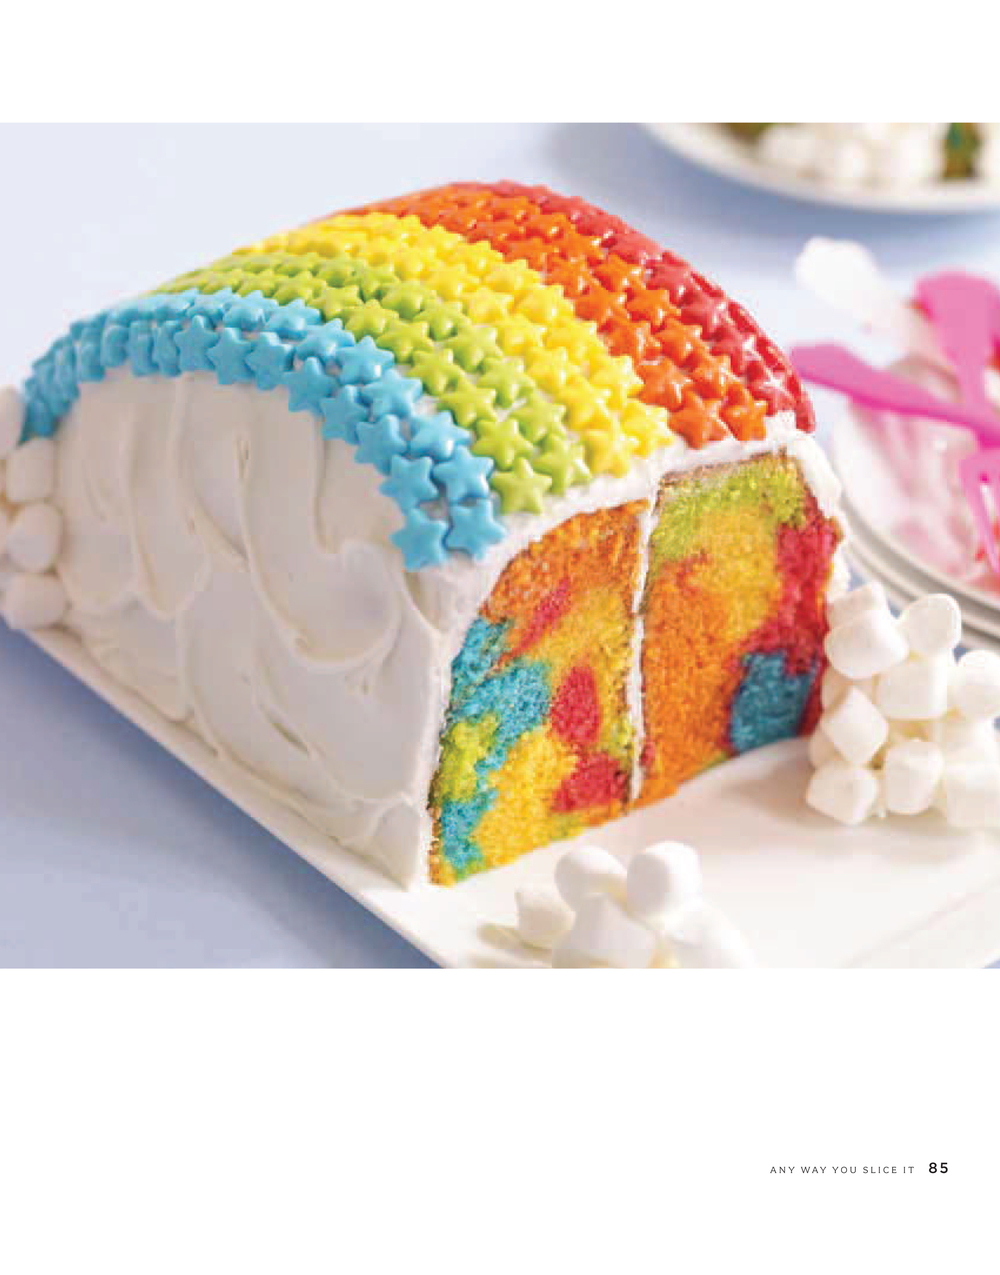 Rainbow Cake - Cake My Day1.jpg